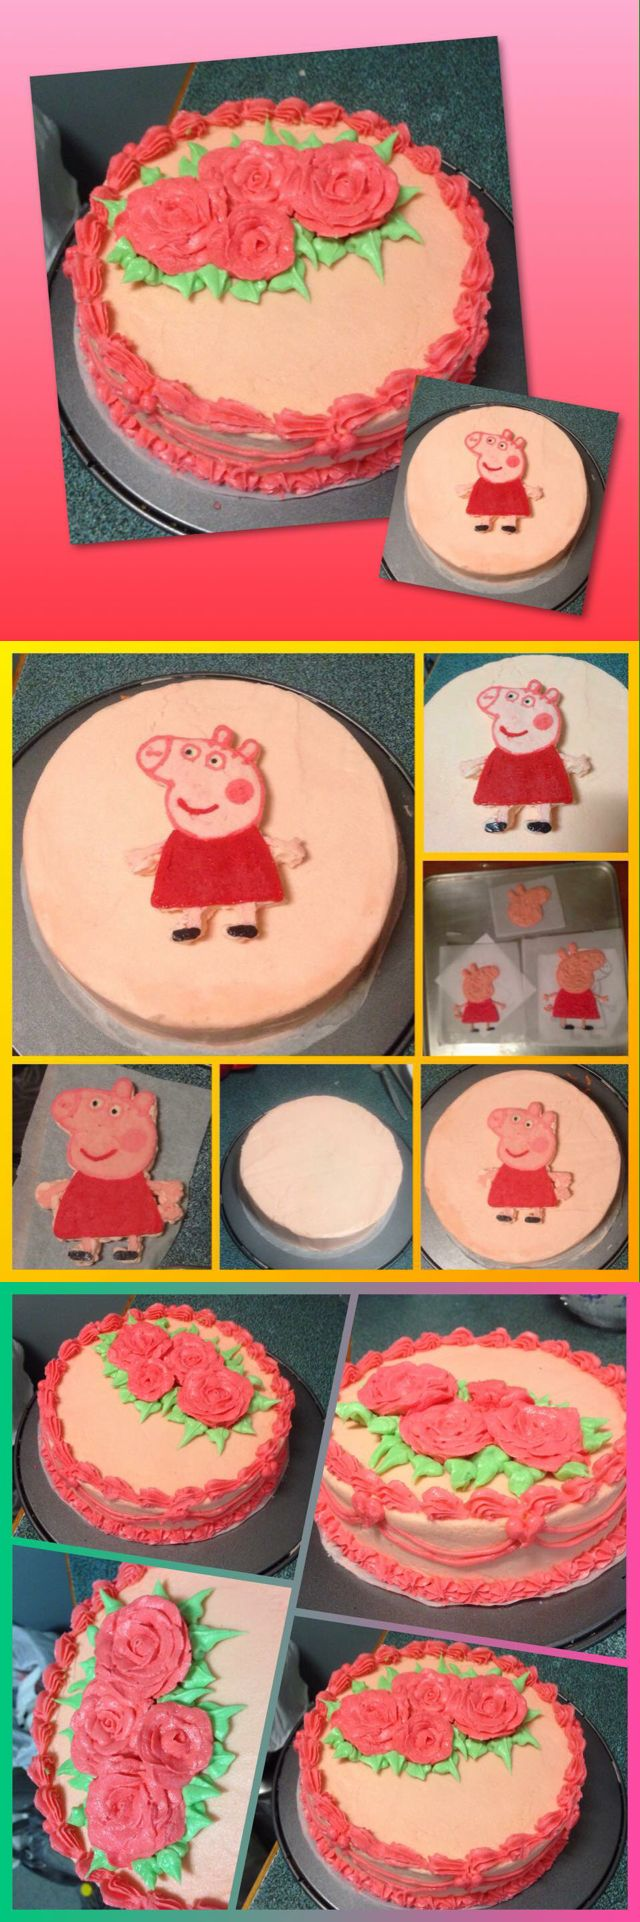 PEPPA PIG BUTTERCREAM TRANSFER & PIPED ROSES... So I wanted to try make a buttercream transfer so I printed a picture and stuck it under a piece of baking paper on a flat surface. (1) Whipped up a batch of buttercream frosting and made into colours needed then into ziplock bags. (2) started off by piping the outline of the face. Placed in freezer to harden slightly for 5mins. Then the red dress online and face features. Back in the freezer for another 5mins. Then the hands and filled in the…